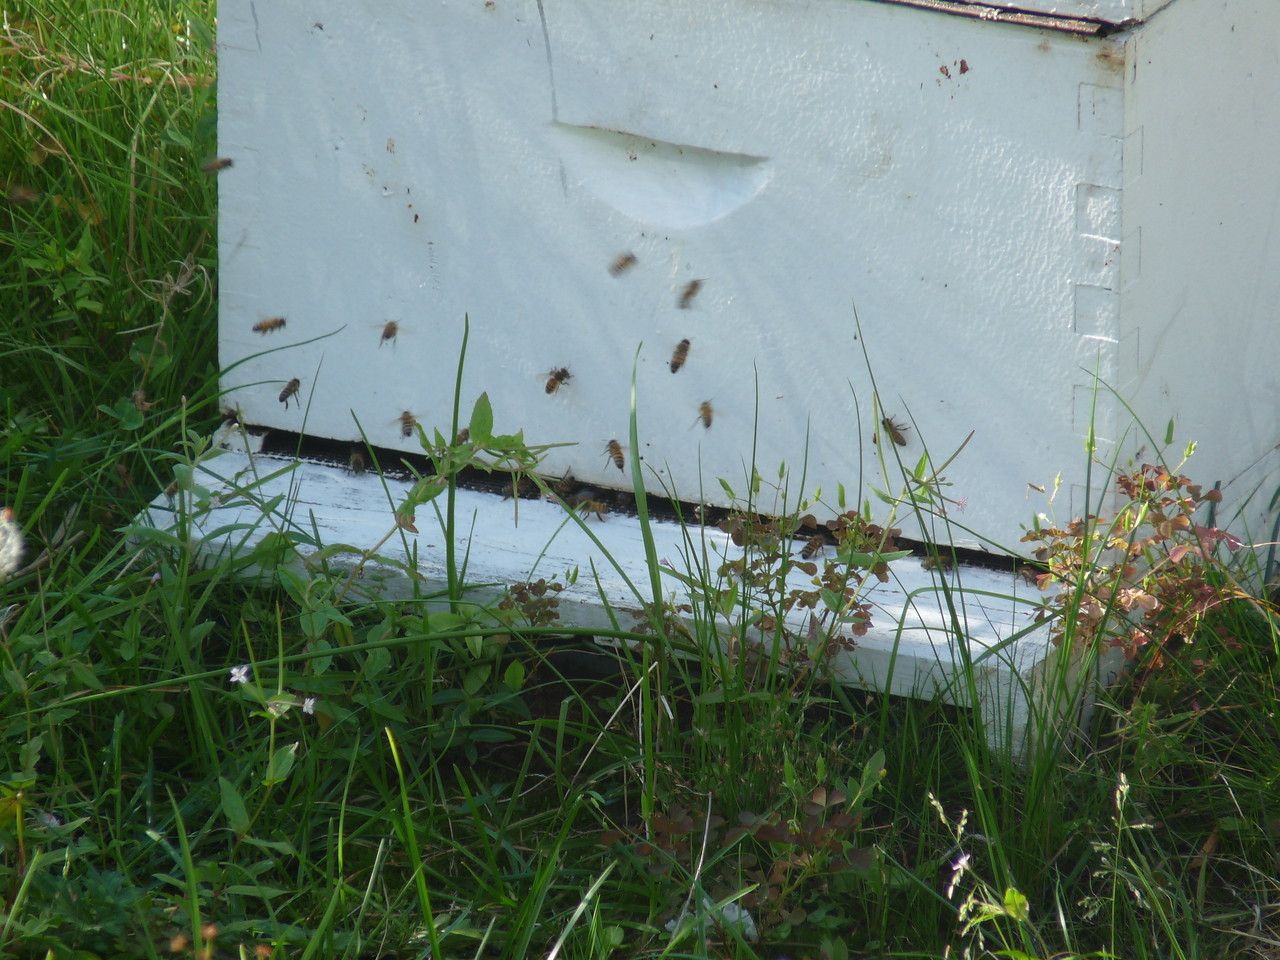 Ah, the busy little workers.<br /> <br /> Many of the downtown buildings have apiaries in their roof-top gardens.